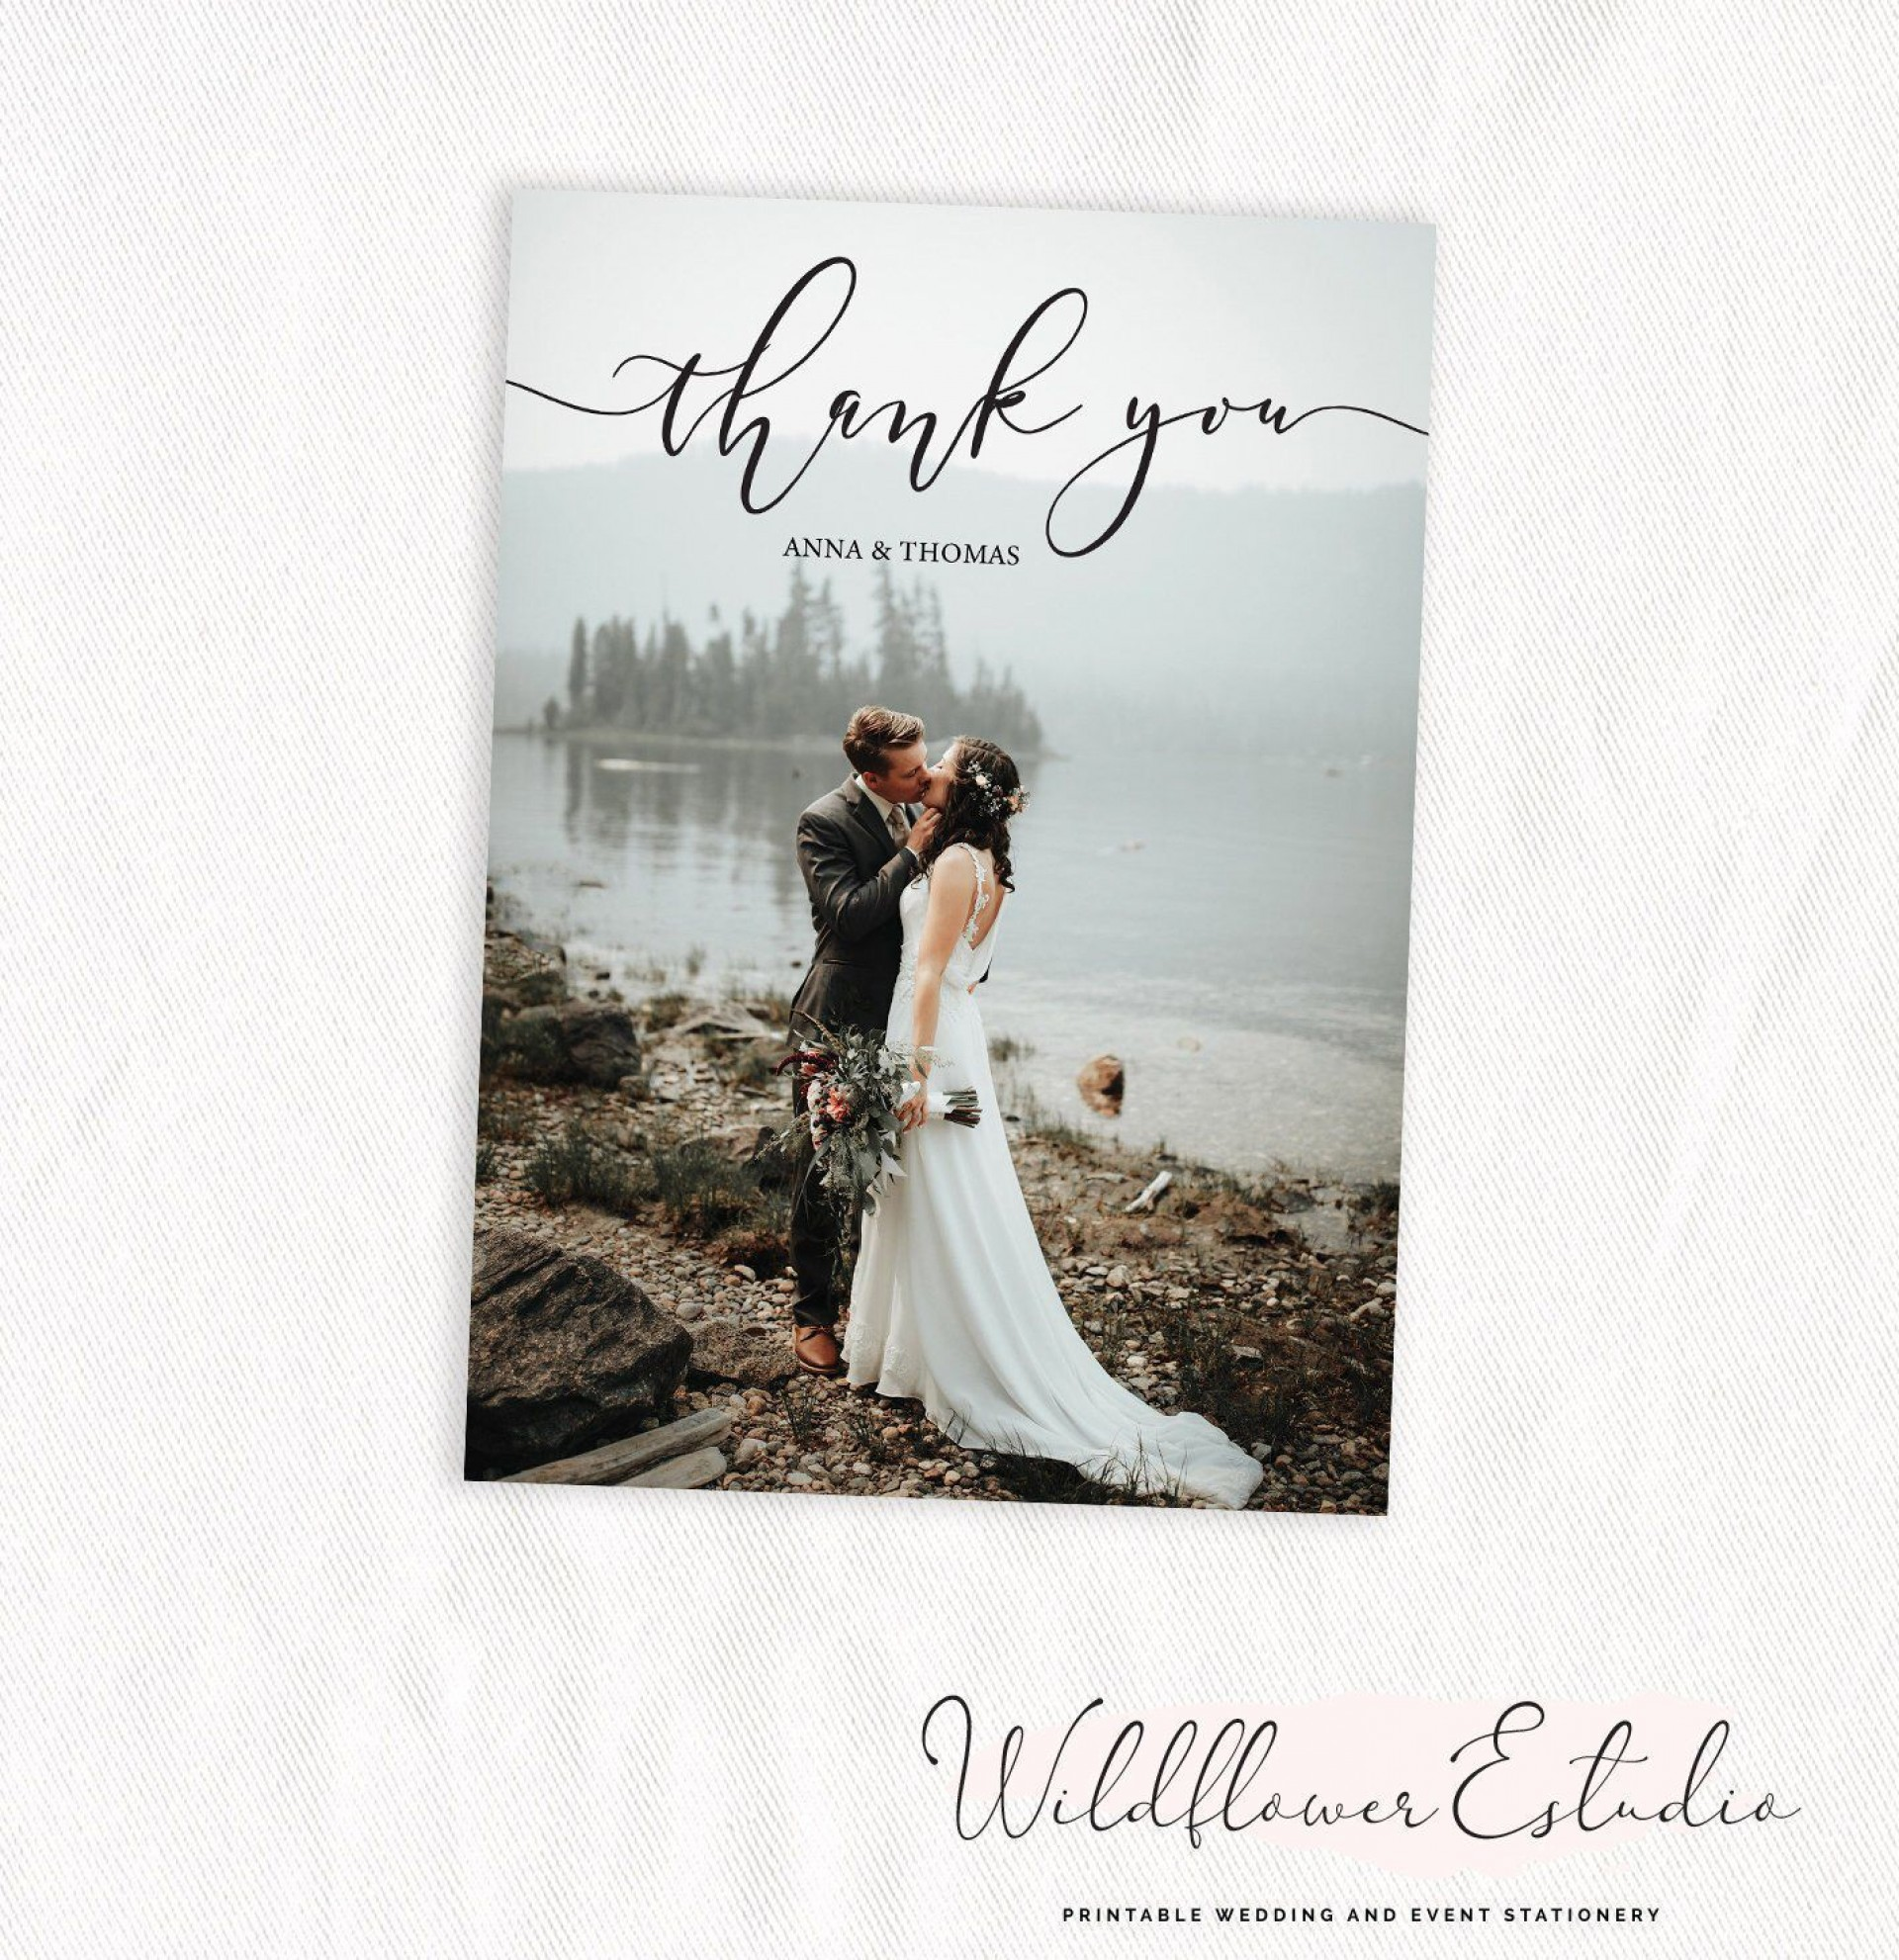 005 Staggering Wedding Thank You Card Template Psd Idea  Free1920